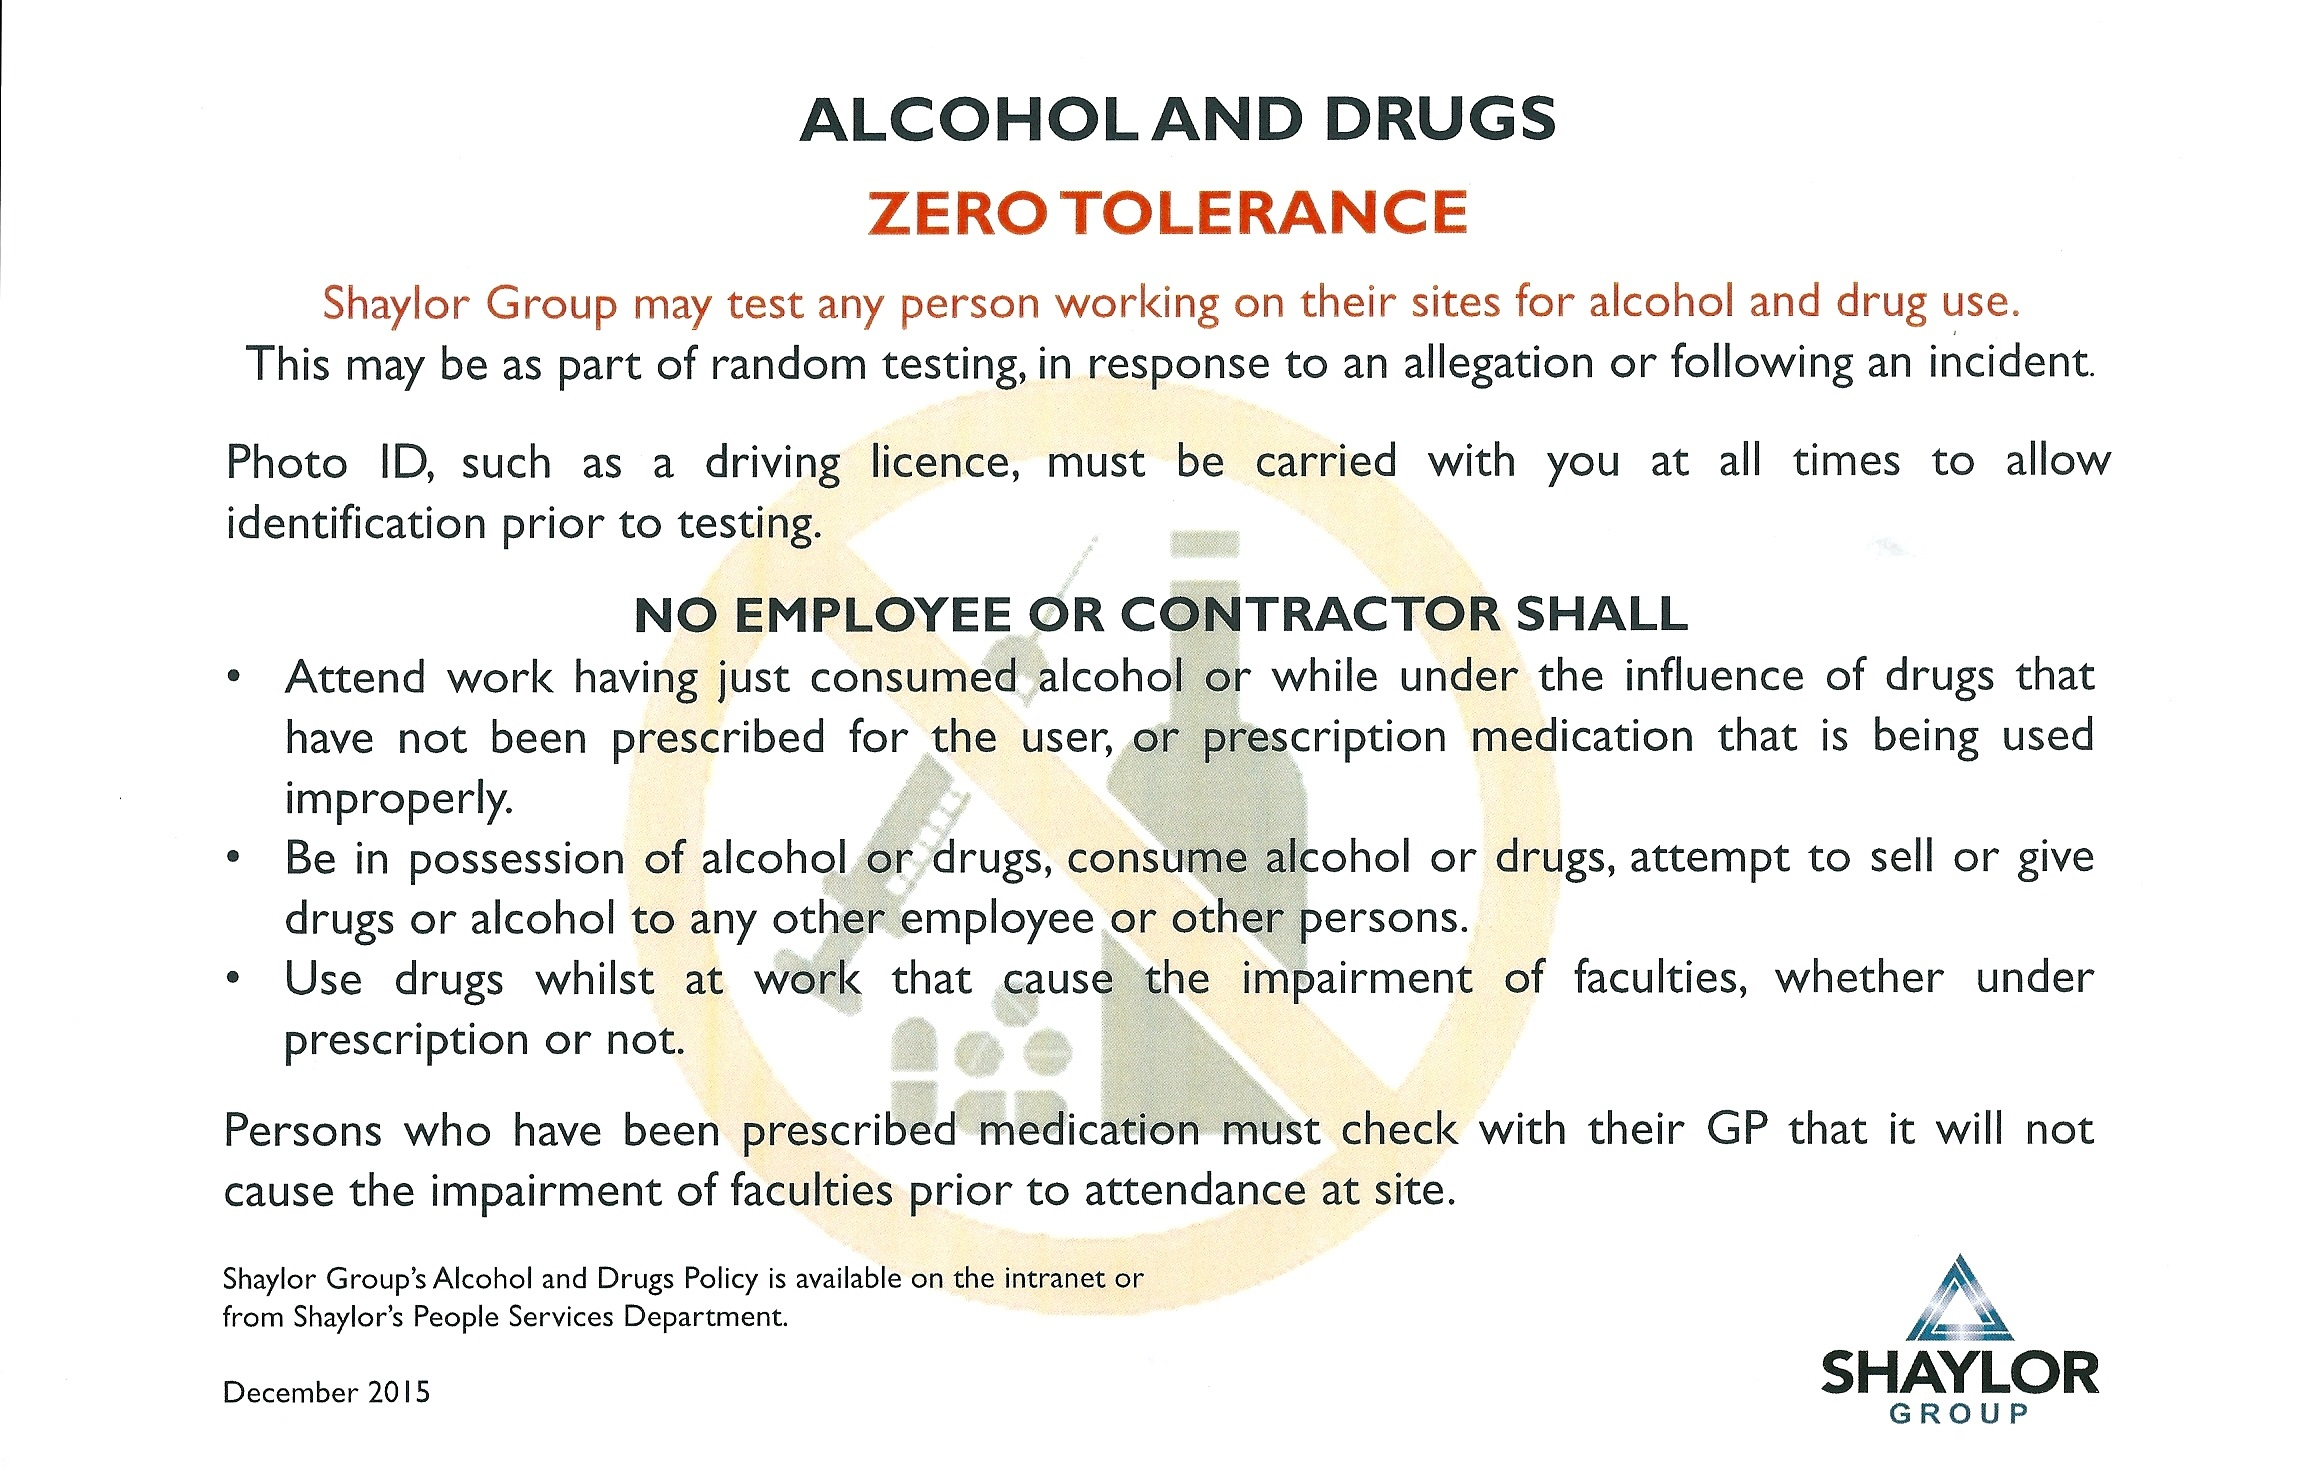 drugs and alcohol policy best practice hub saveenlarge free pharmaceutical project management templates aec